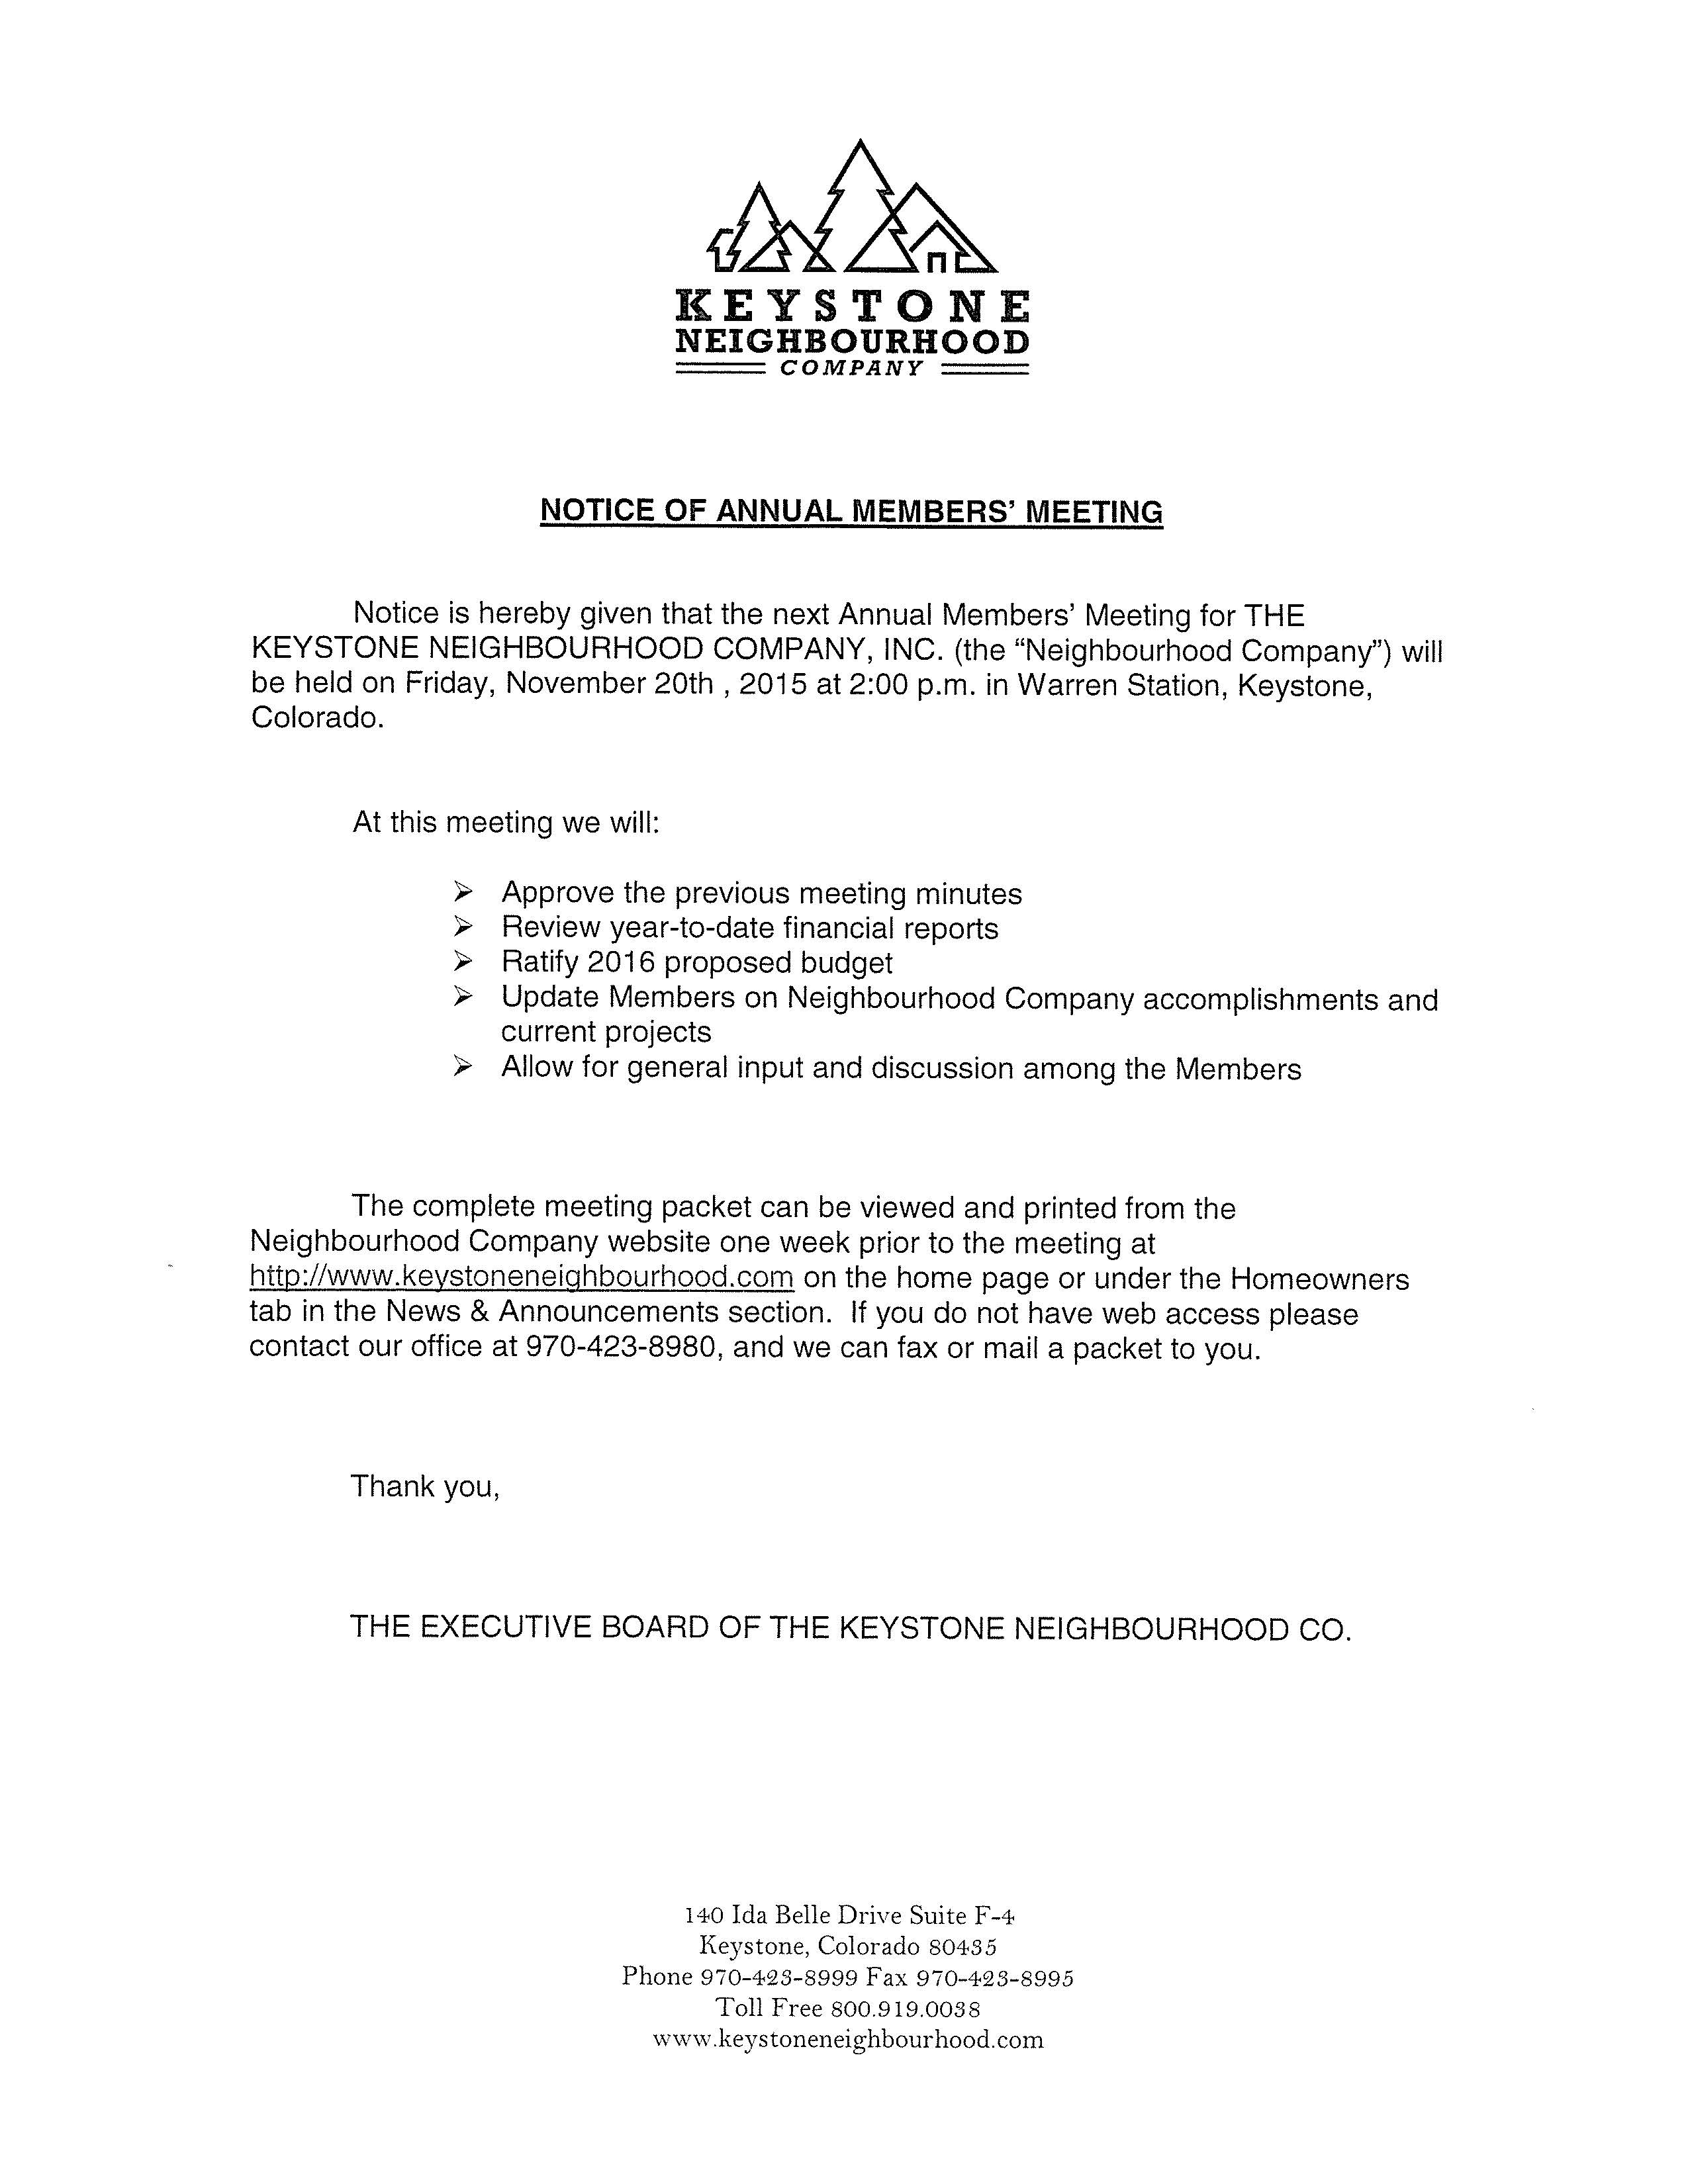 notice of annual members meeting call to candidates keystone please share this